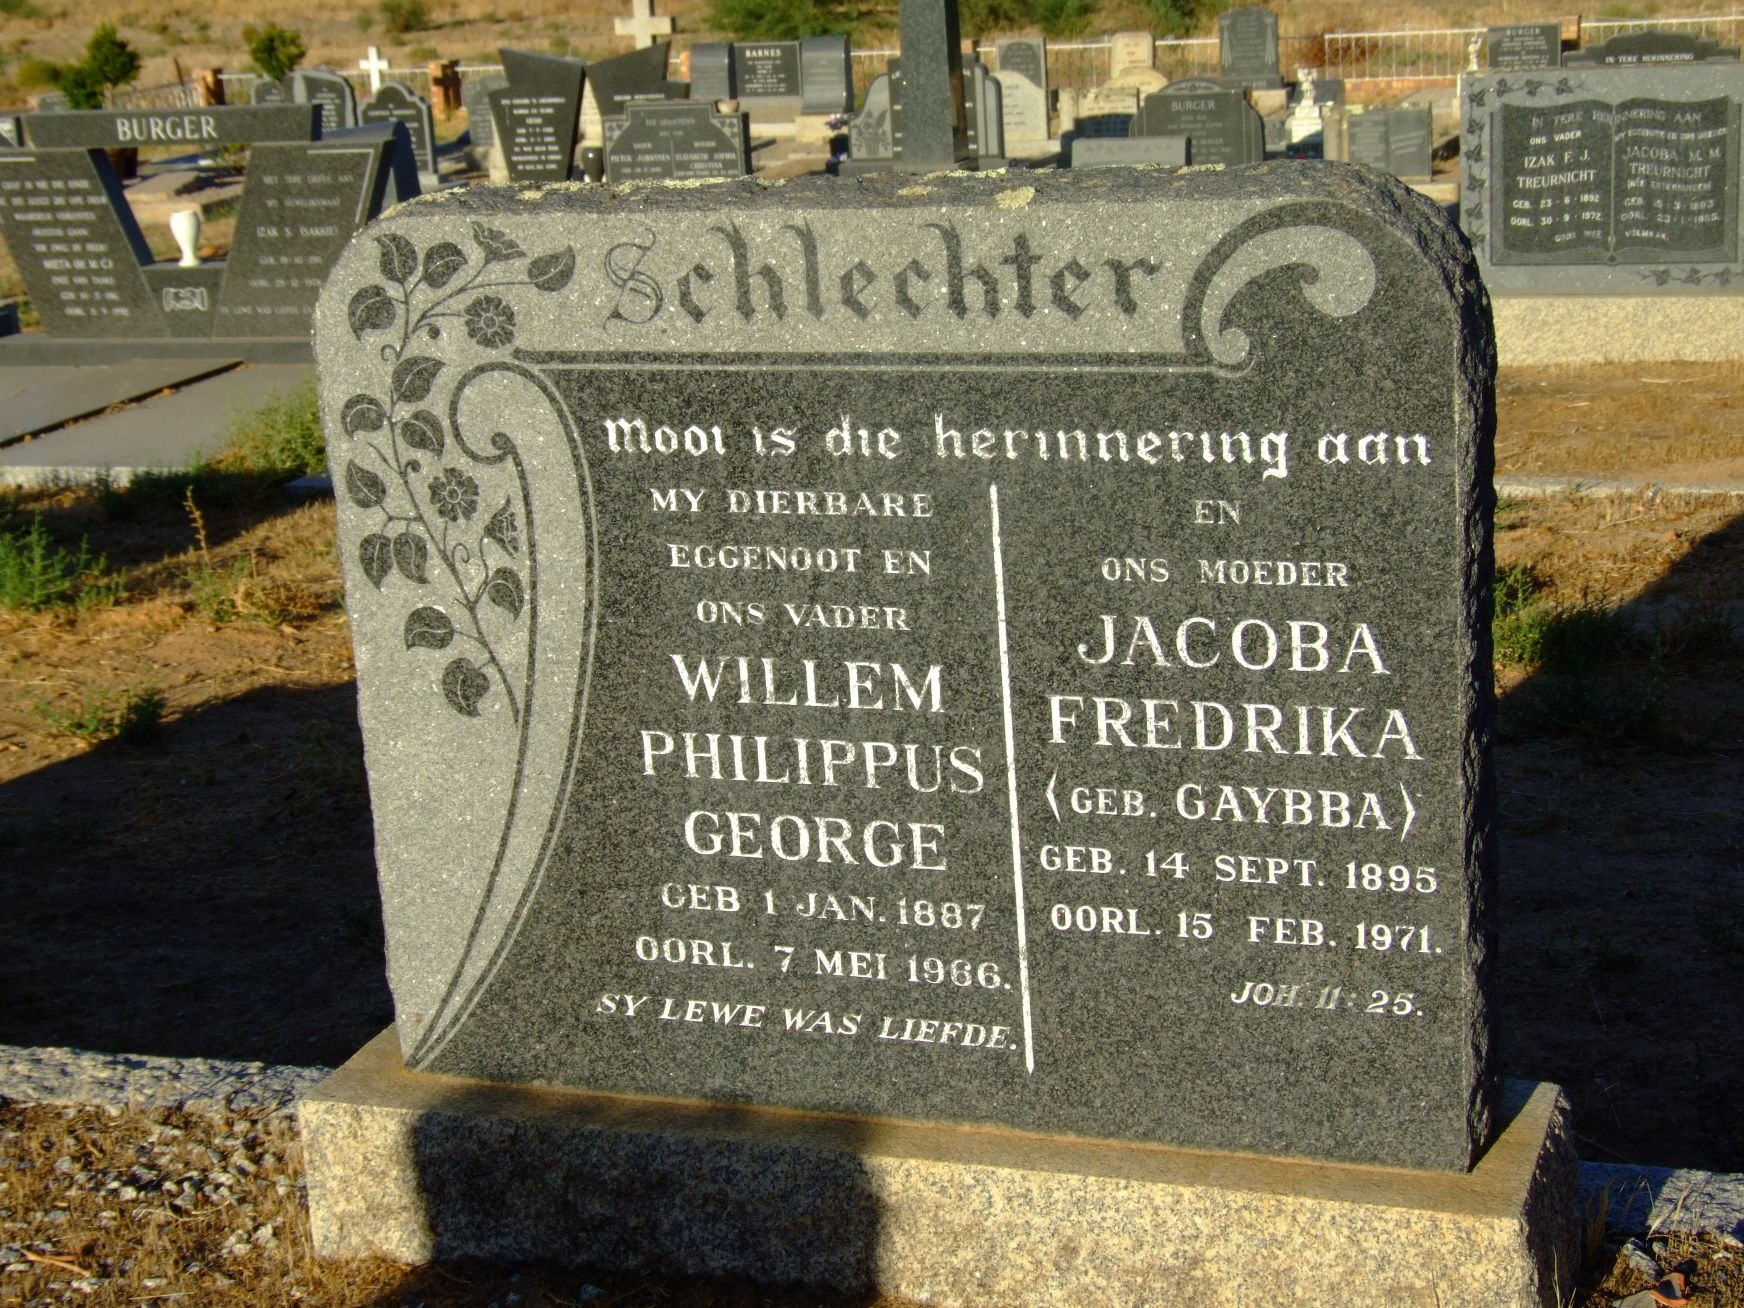 Schlechter, Willem Philippus George and Schlechter, Jacoba Frede